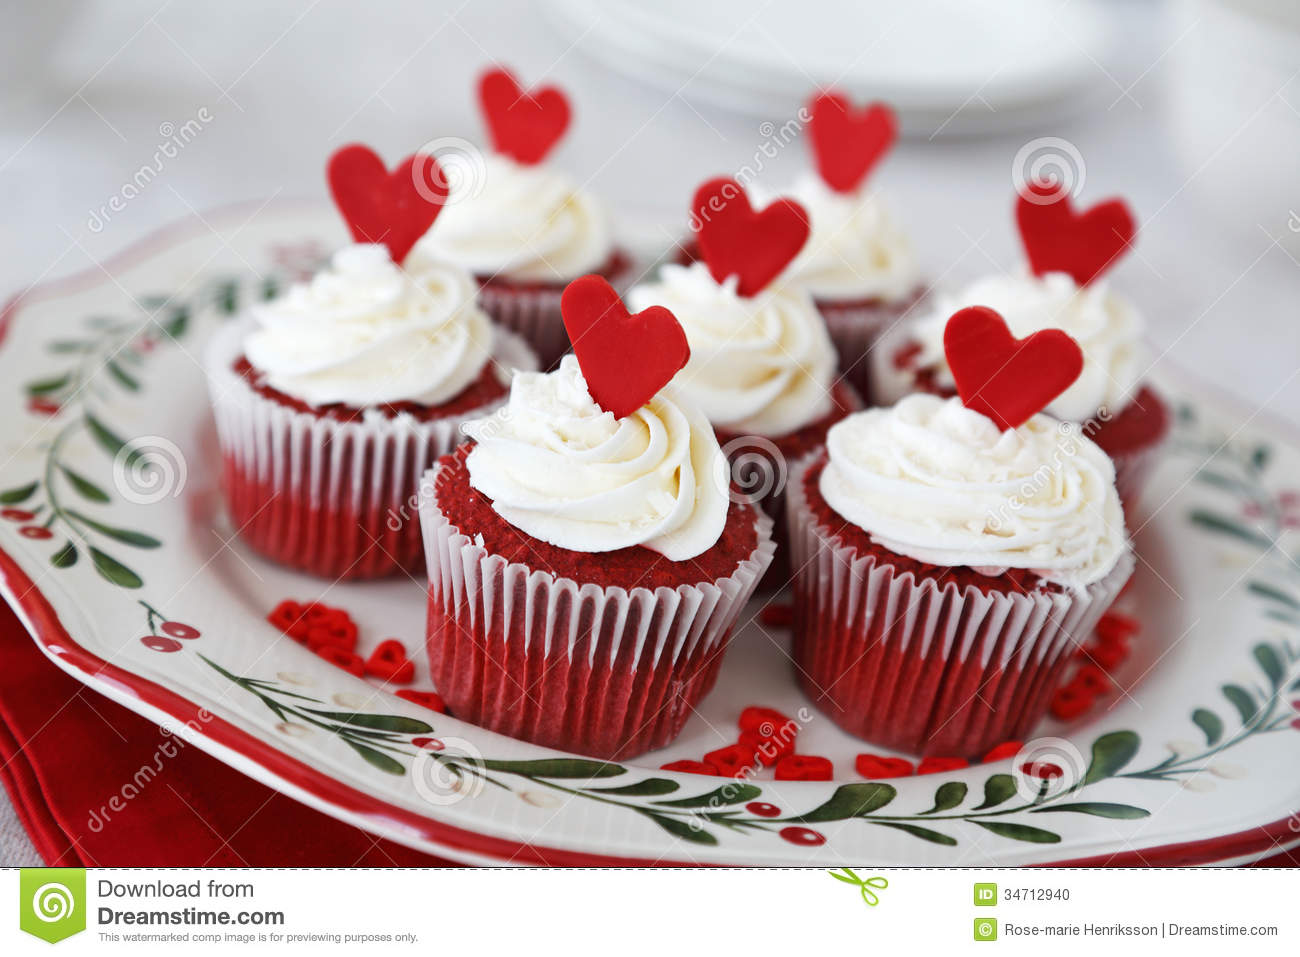 Red velvet cupcakes decorated for Christmas with red hearts.